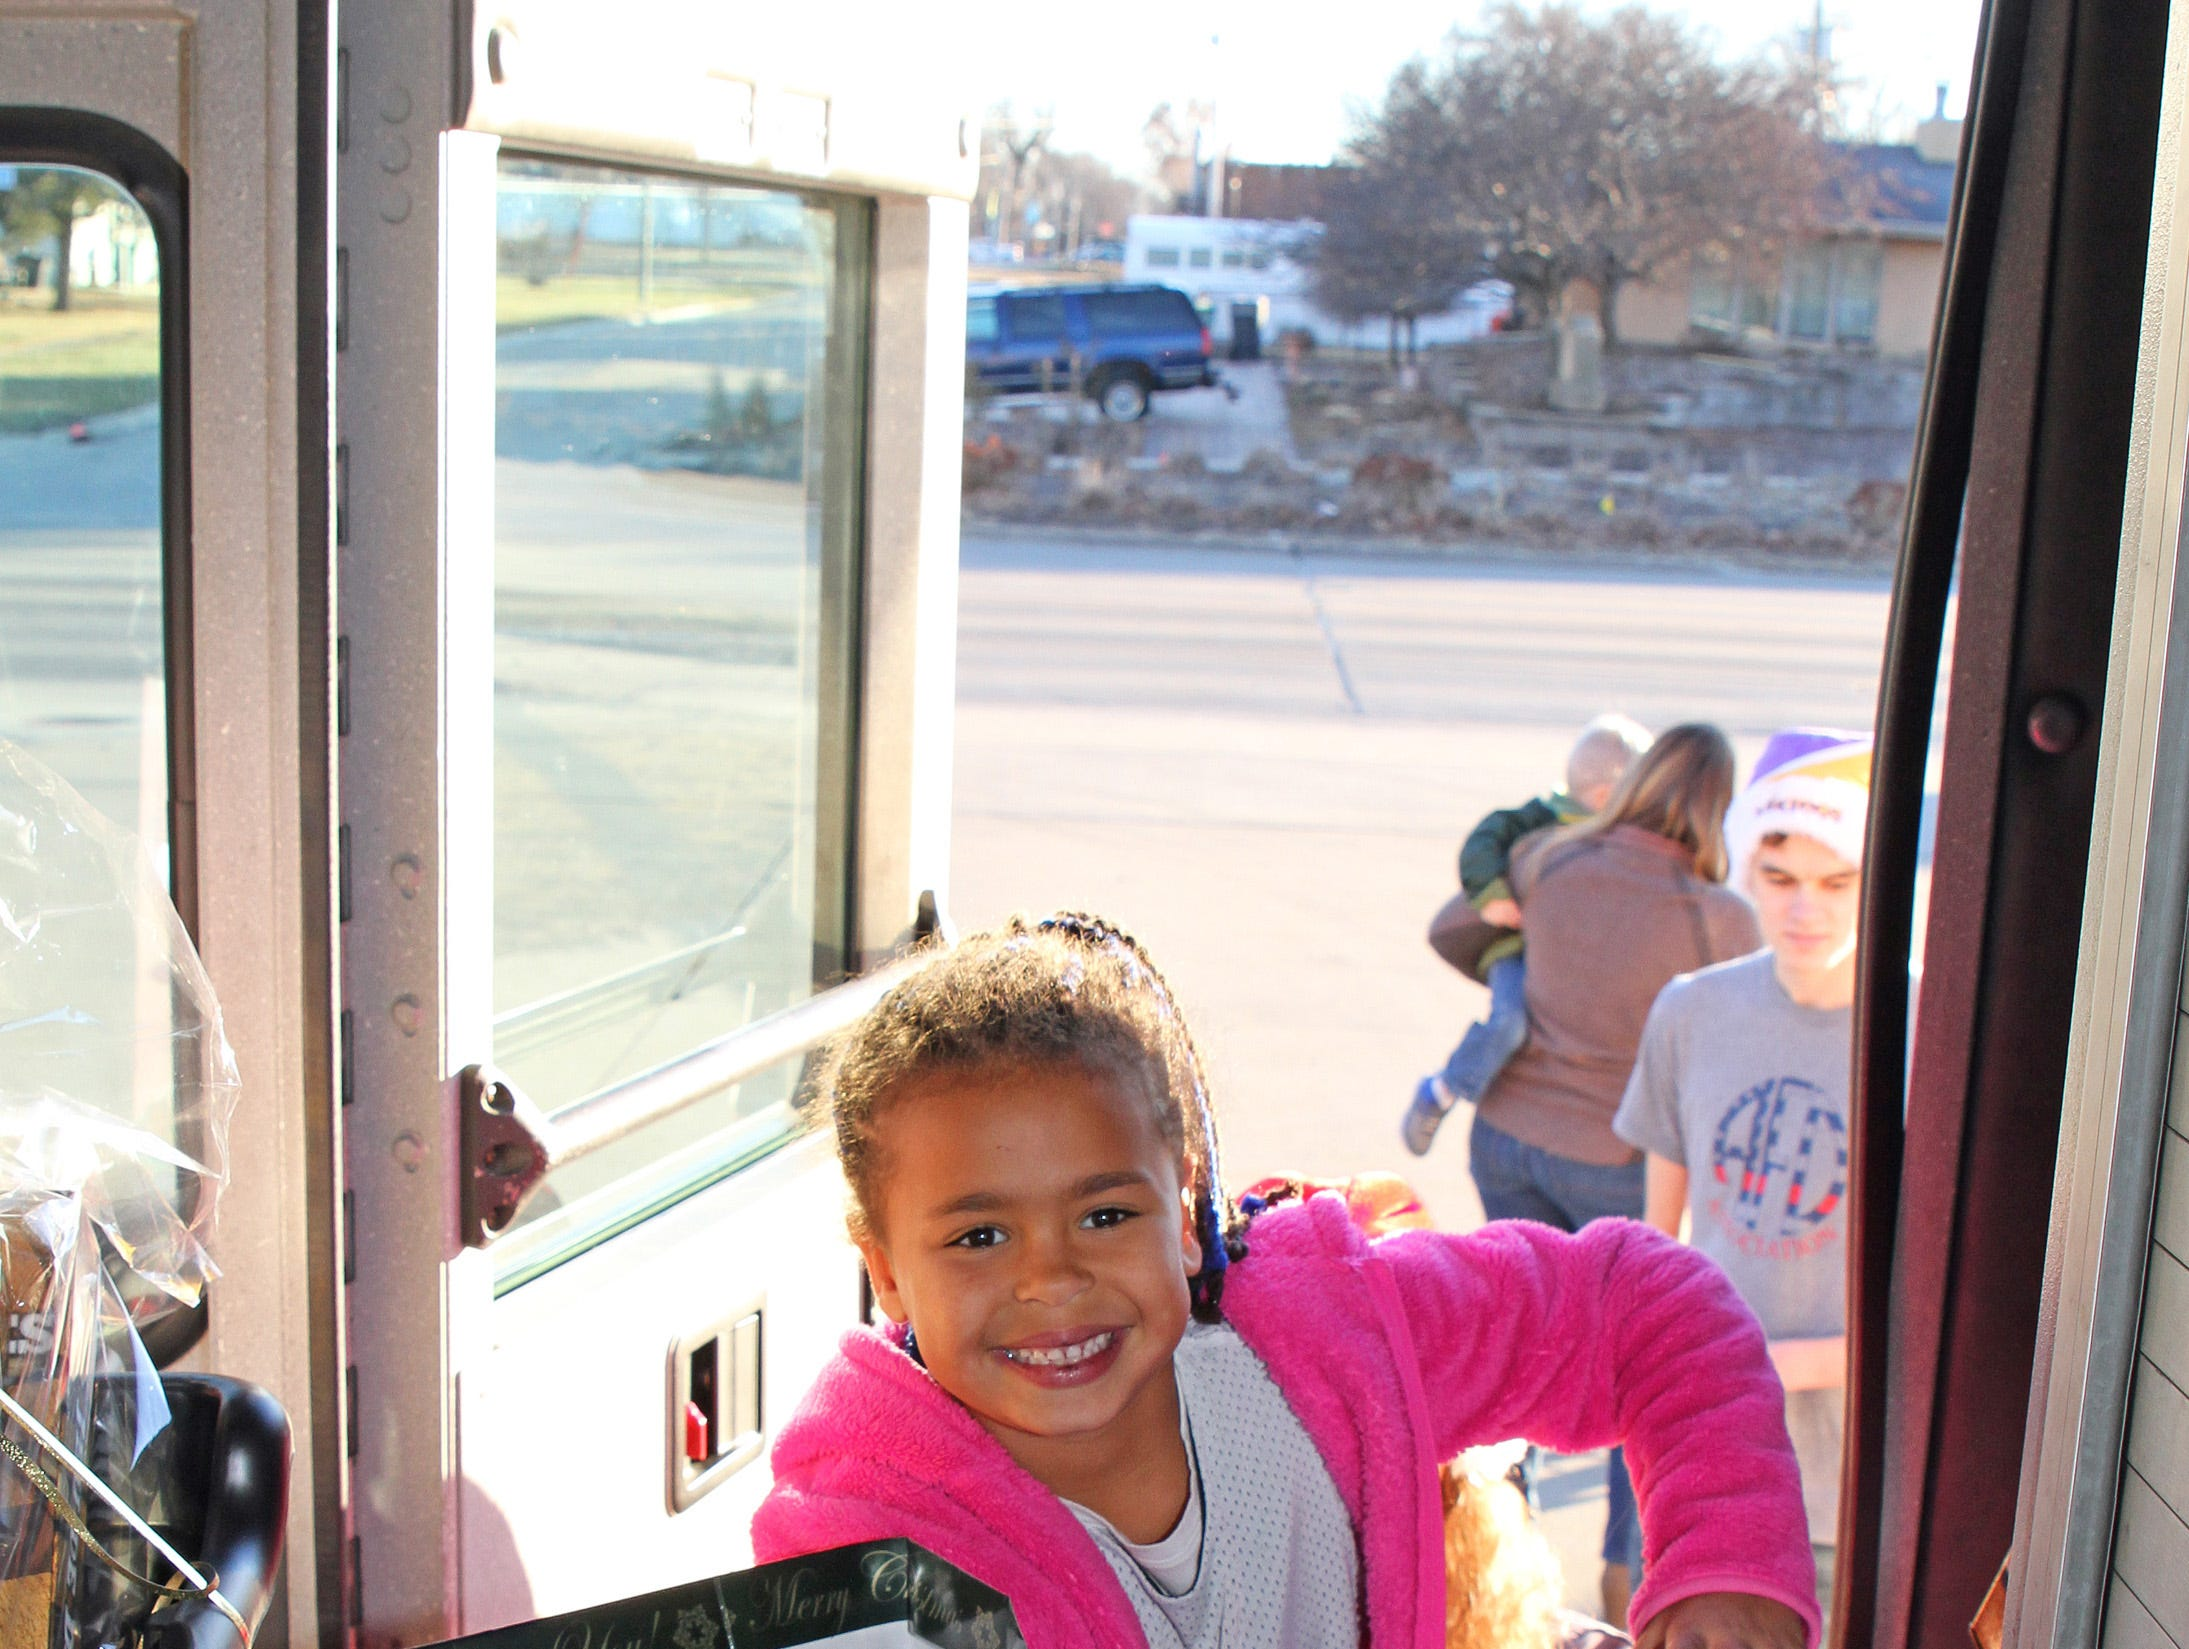 Saylor Horsley, 7, of Ankeny adds to the collection as gifts are dropped off at Ankeny's fill the truck day during the U.S. Marine Corps Toys for Tots campaign at the Ankeny Fire Station Headquarters on Sunday, Dec. 16, 2018.